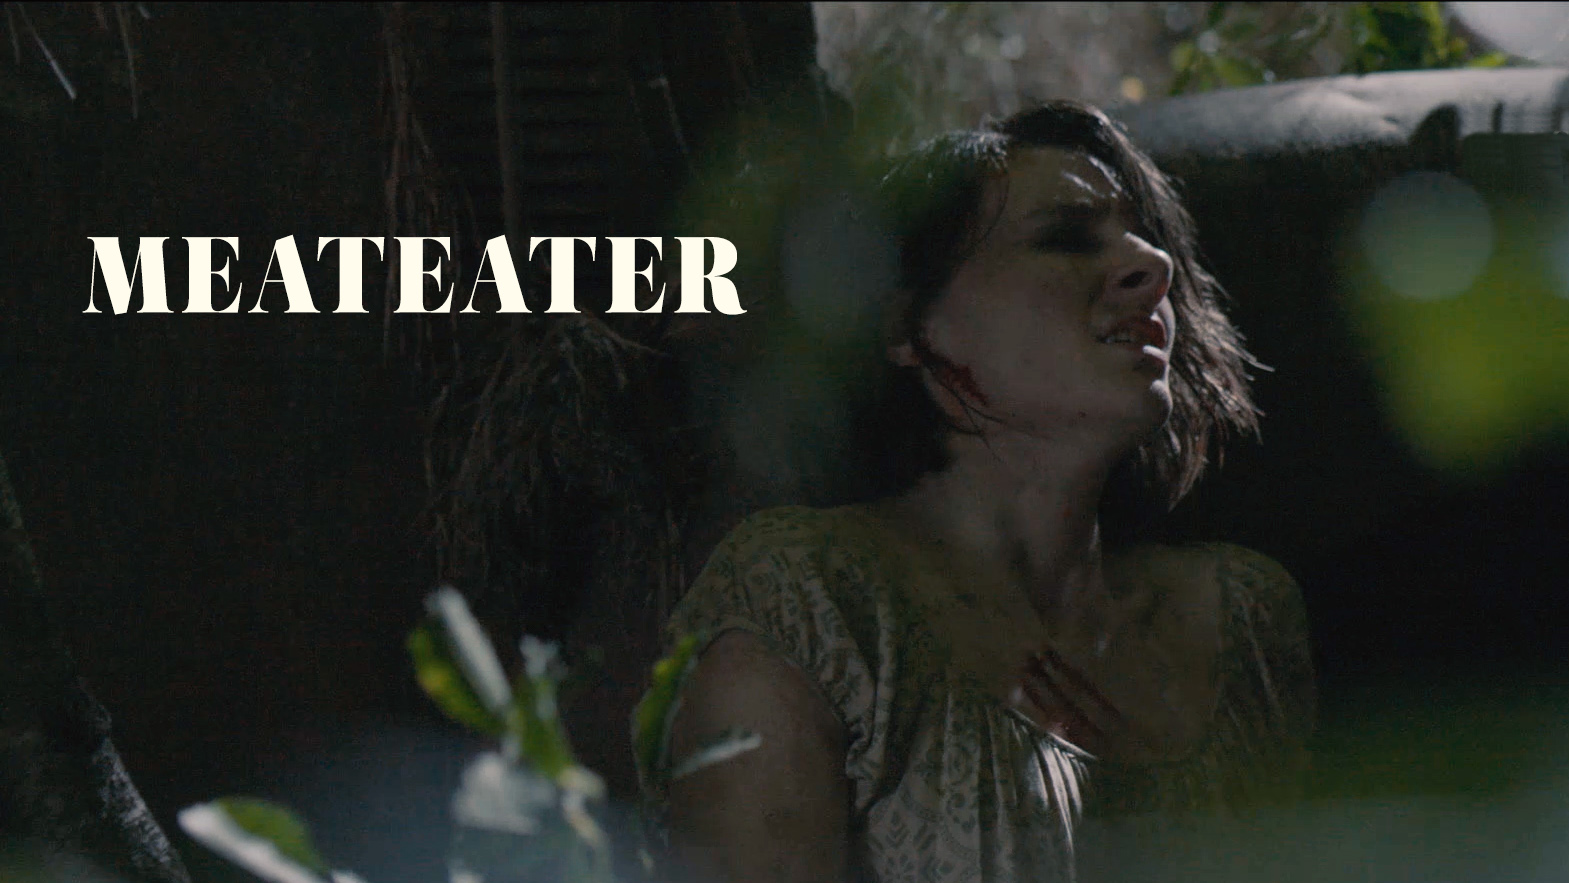 MEATEATER - A micro horror short film. Premiering on the 2018/2019 festival circuit.